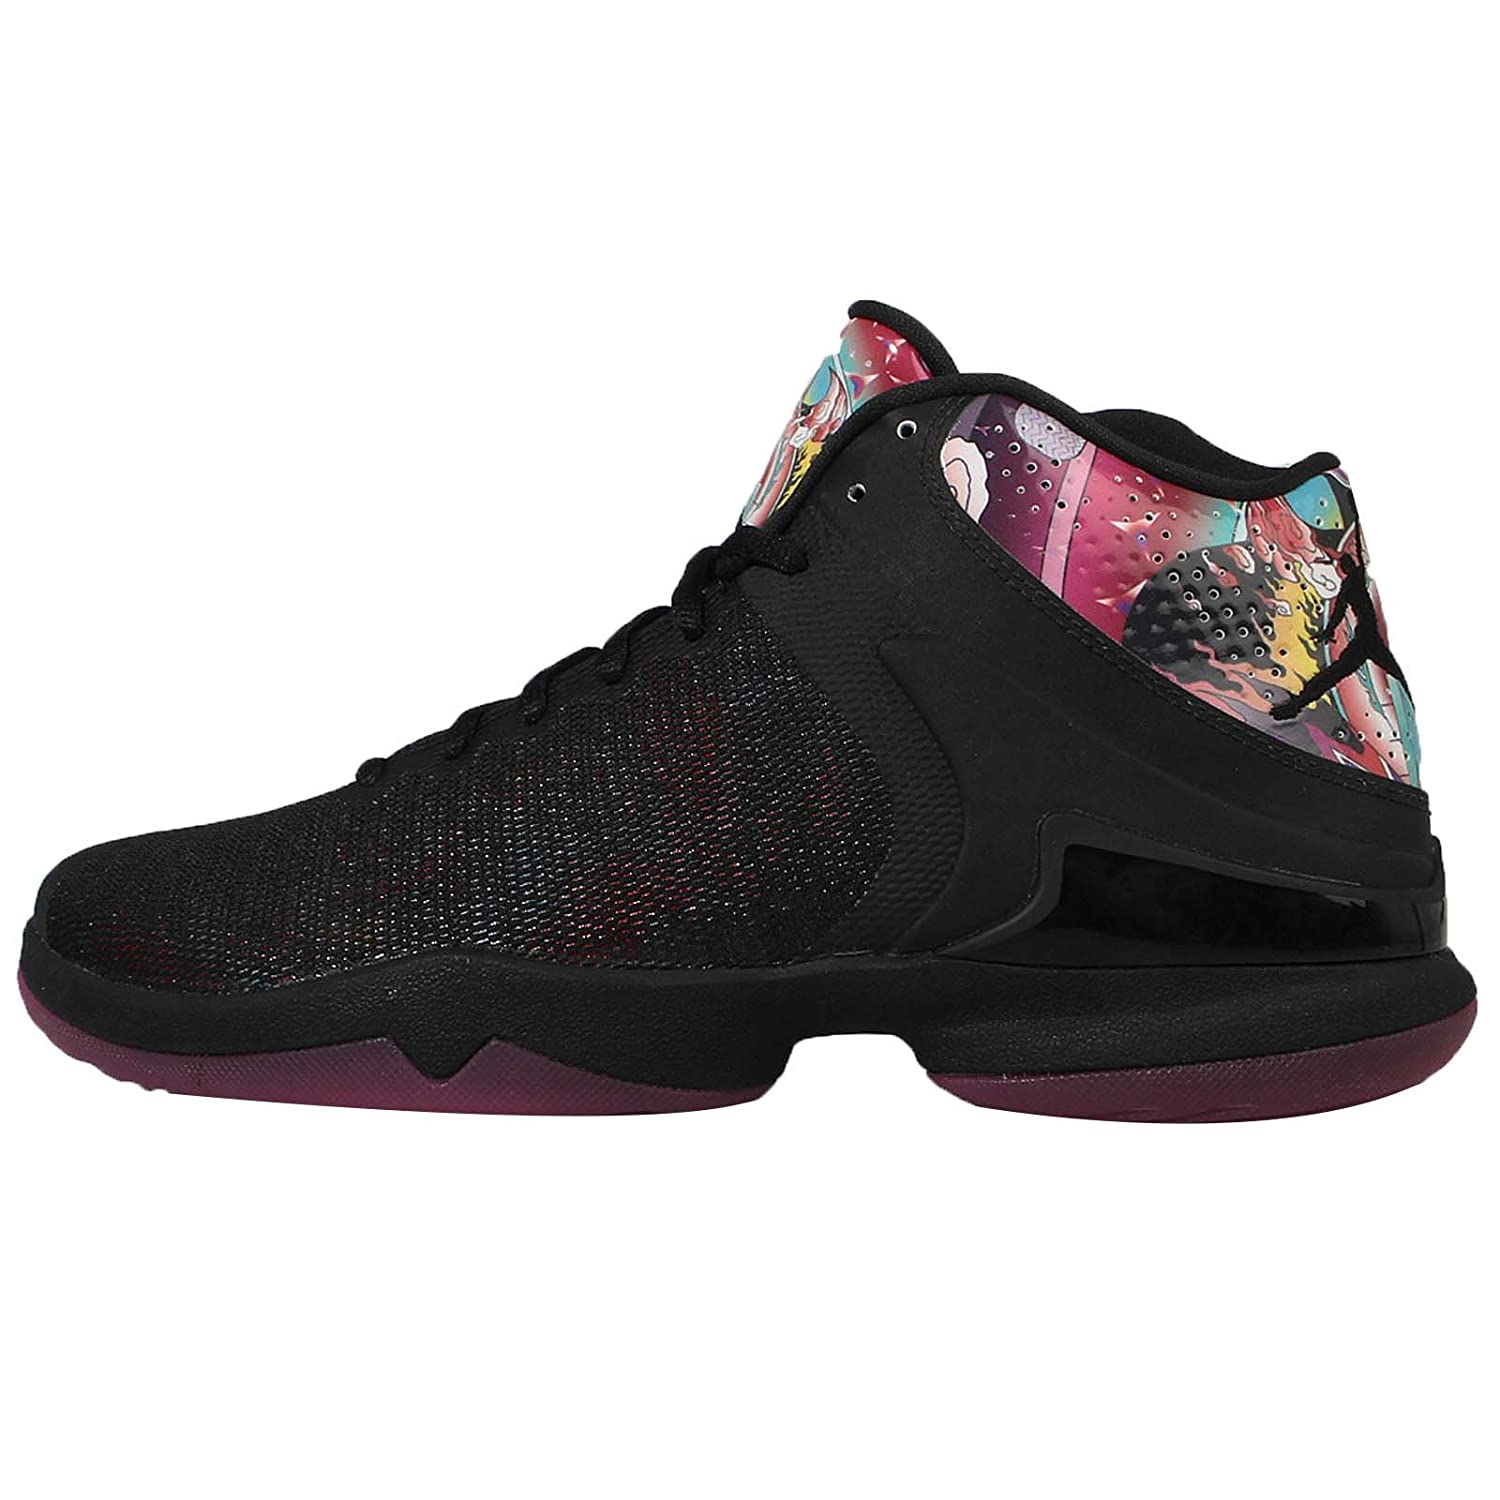 finest selection 01fb9 a78db Nike Air Jordan Super.Fly 4 PO CNY Mens Hi Top Basketball Trainers 840476  Sneakers Shoes (UK 11.5 US 12.5 EU 47, Black Dynamic Pink 060)   Amazon.co.uk  ...